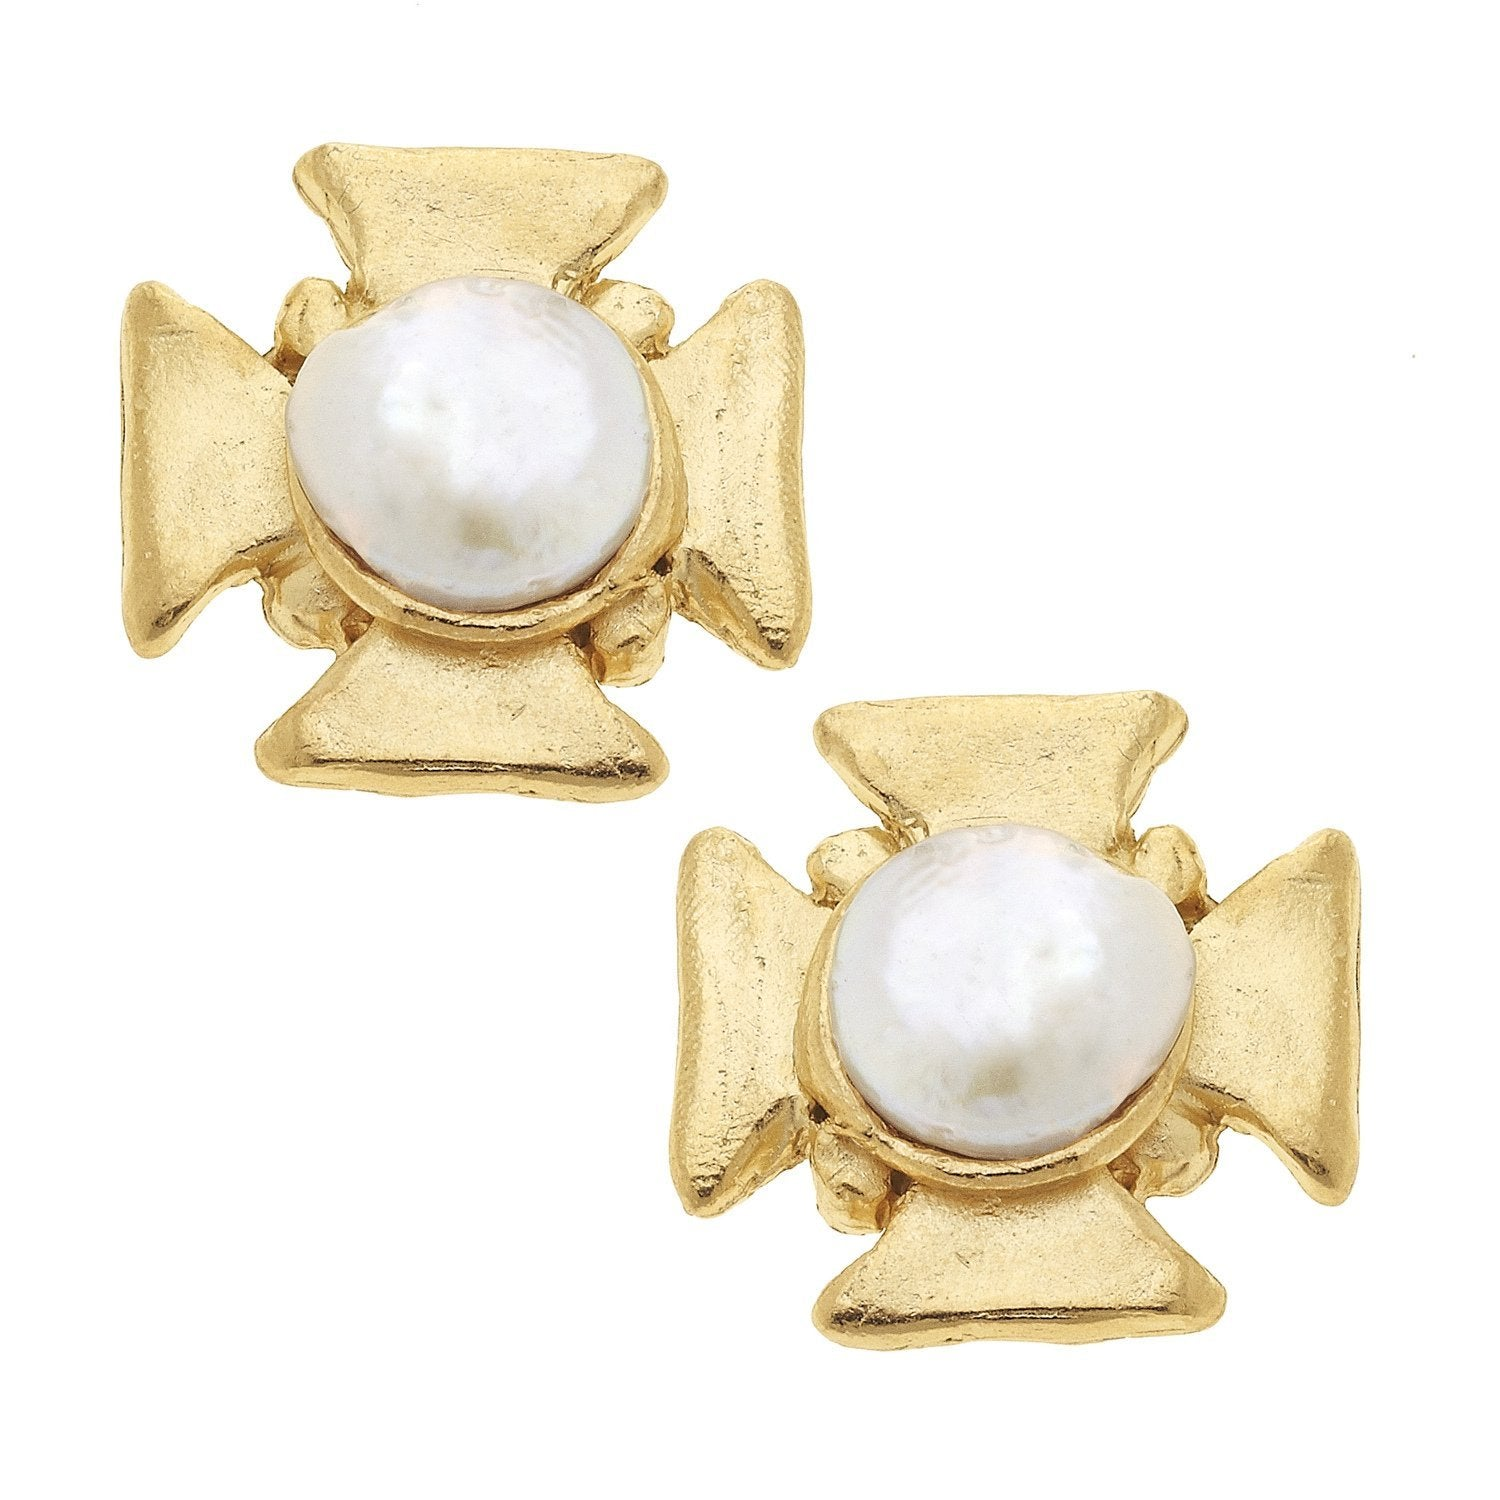 Susan Shaw Handcast Gold Cross with Genuine Freshwater Pearl Pierced Earrings